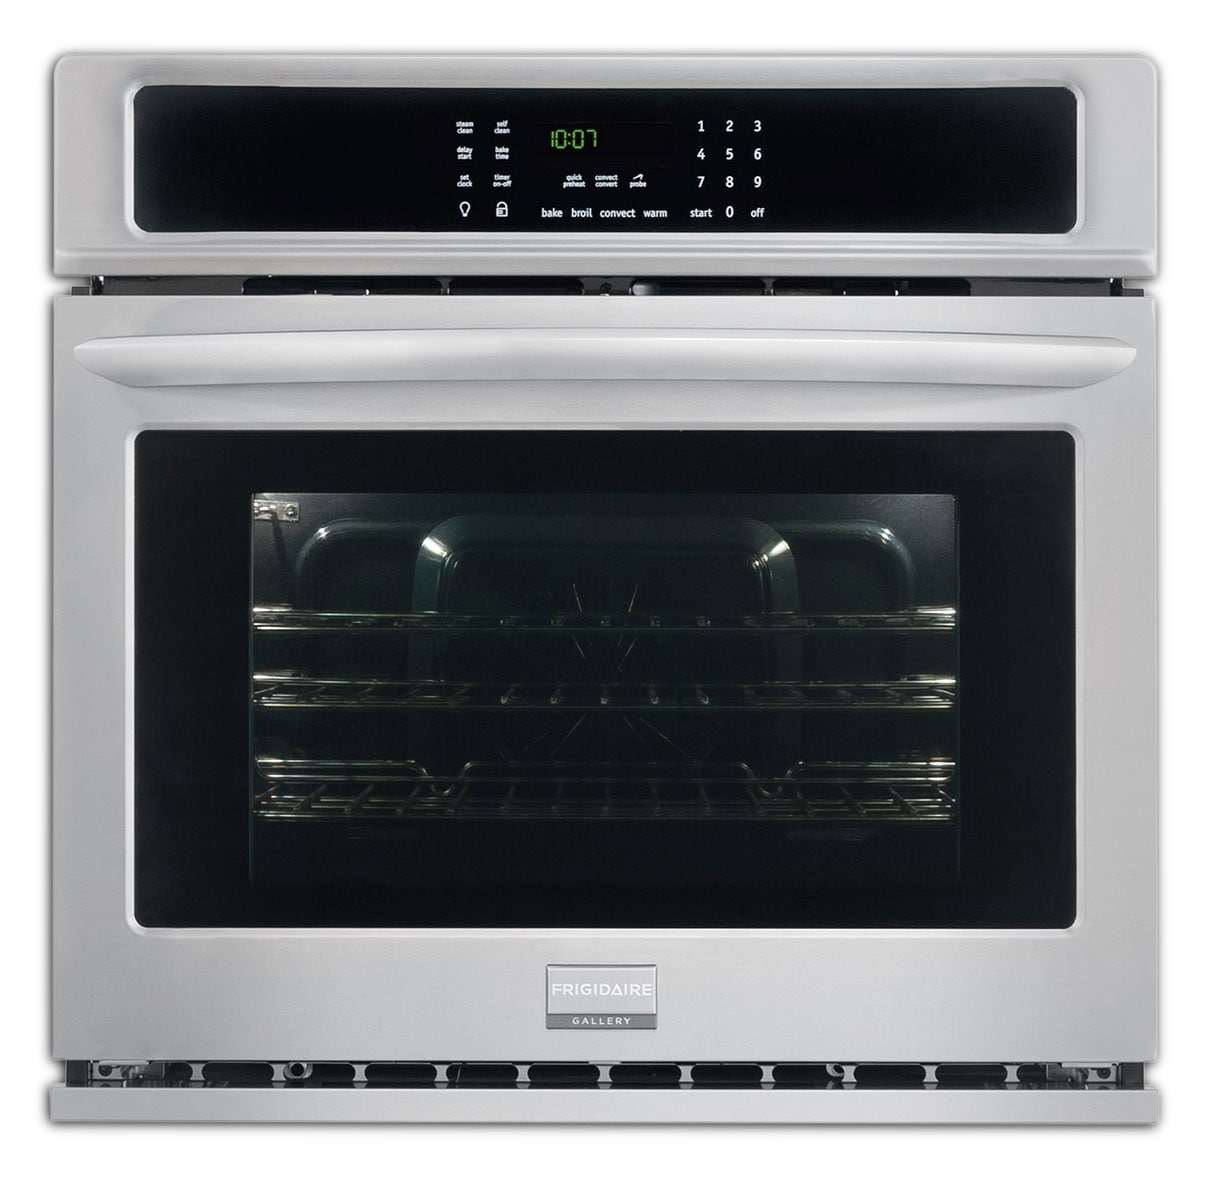 Cooking Products - Frigidaire Gallery Stainless Steel Convection Wall Oven (4.6 Cu. Ft.) - FGEW3065PF